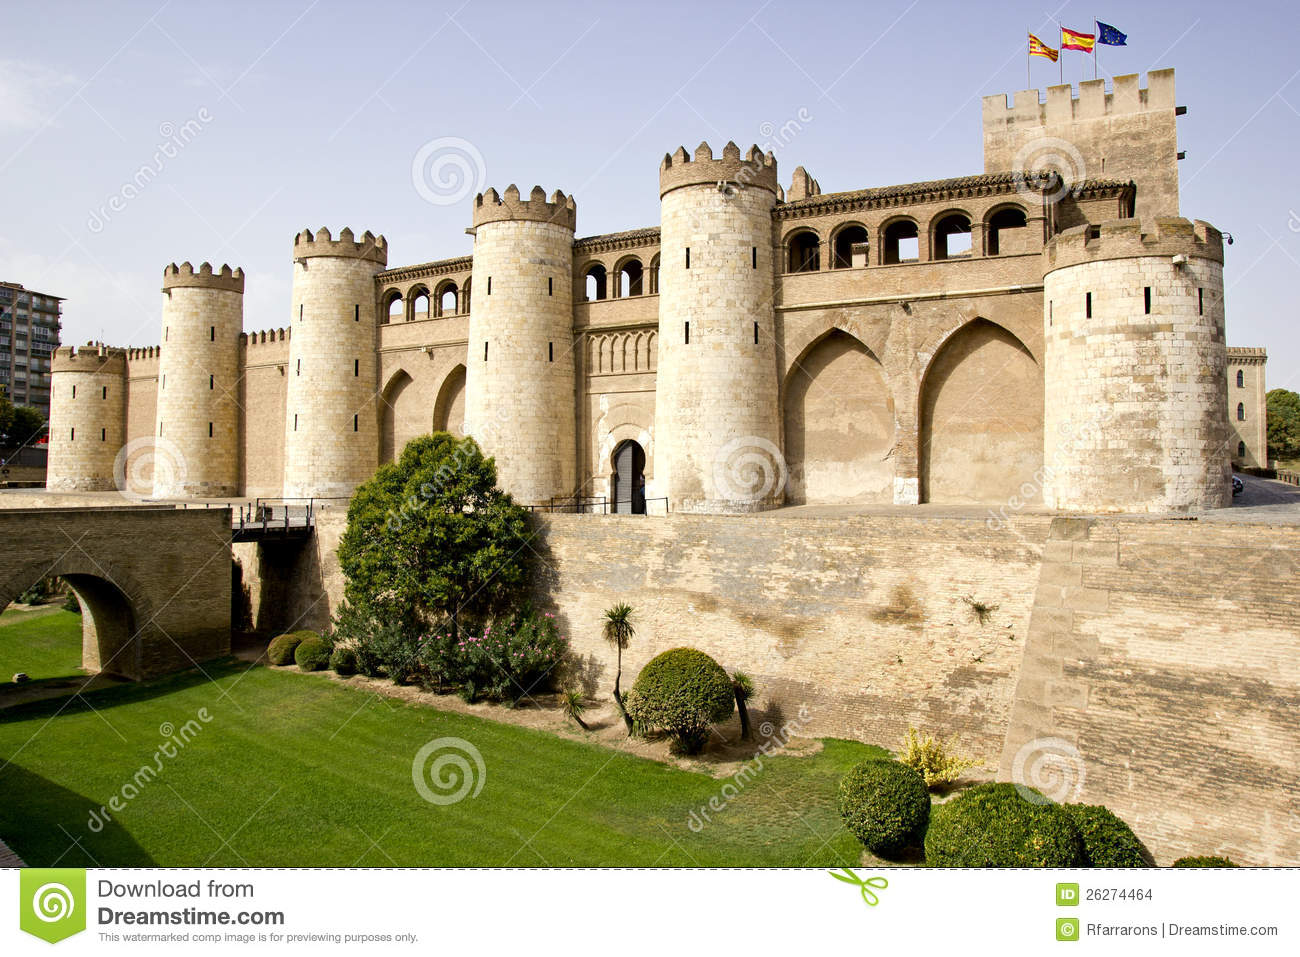 zaragoza muslim Learn more with what zaragoza, your helpful and in-depth zaragoza city guide zaragoza guide the capital of the province of aragon to the muslim presence.